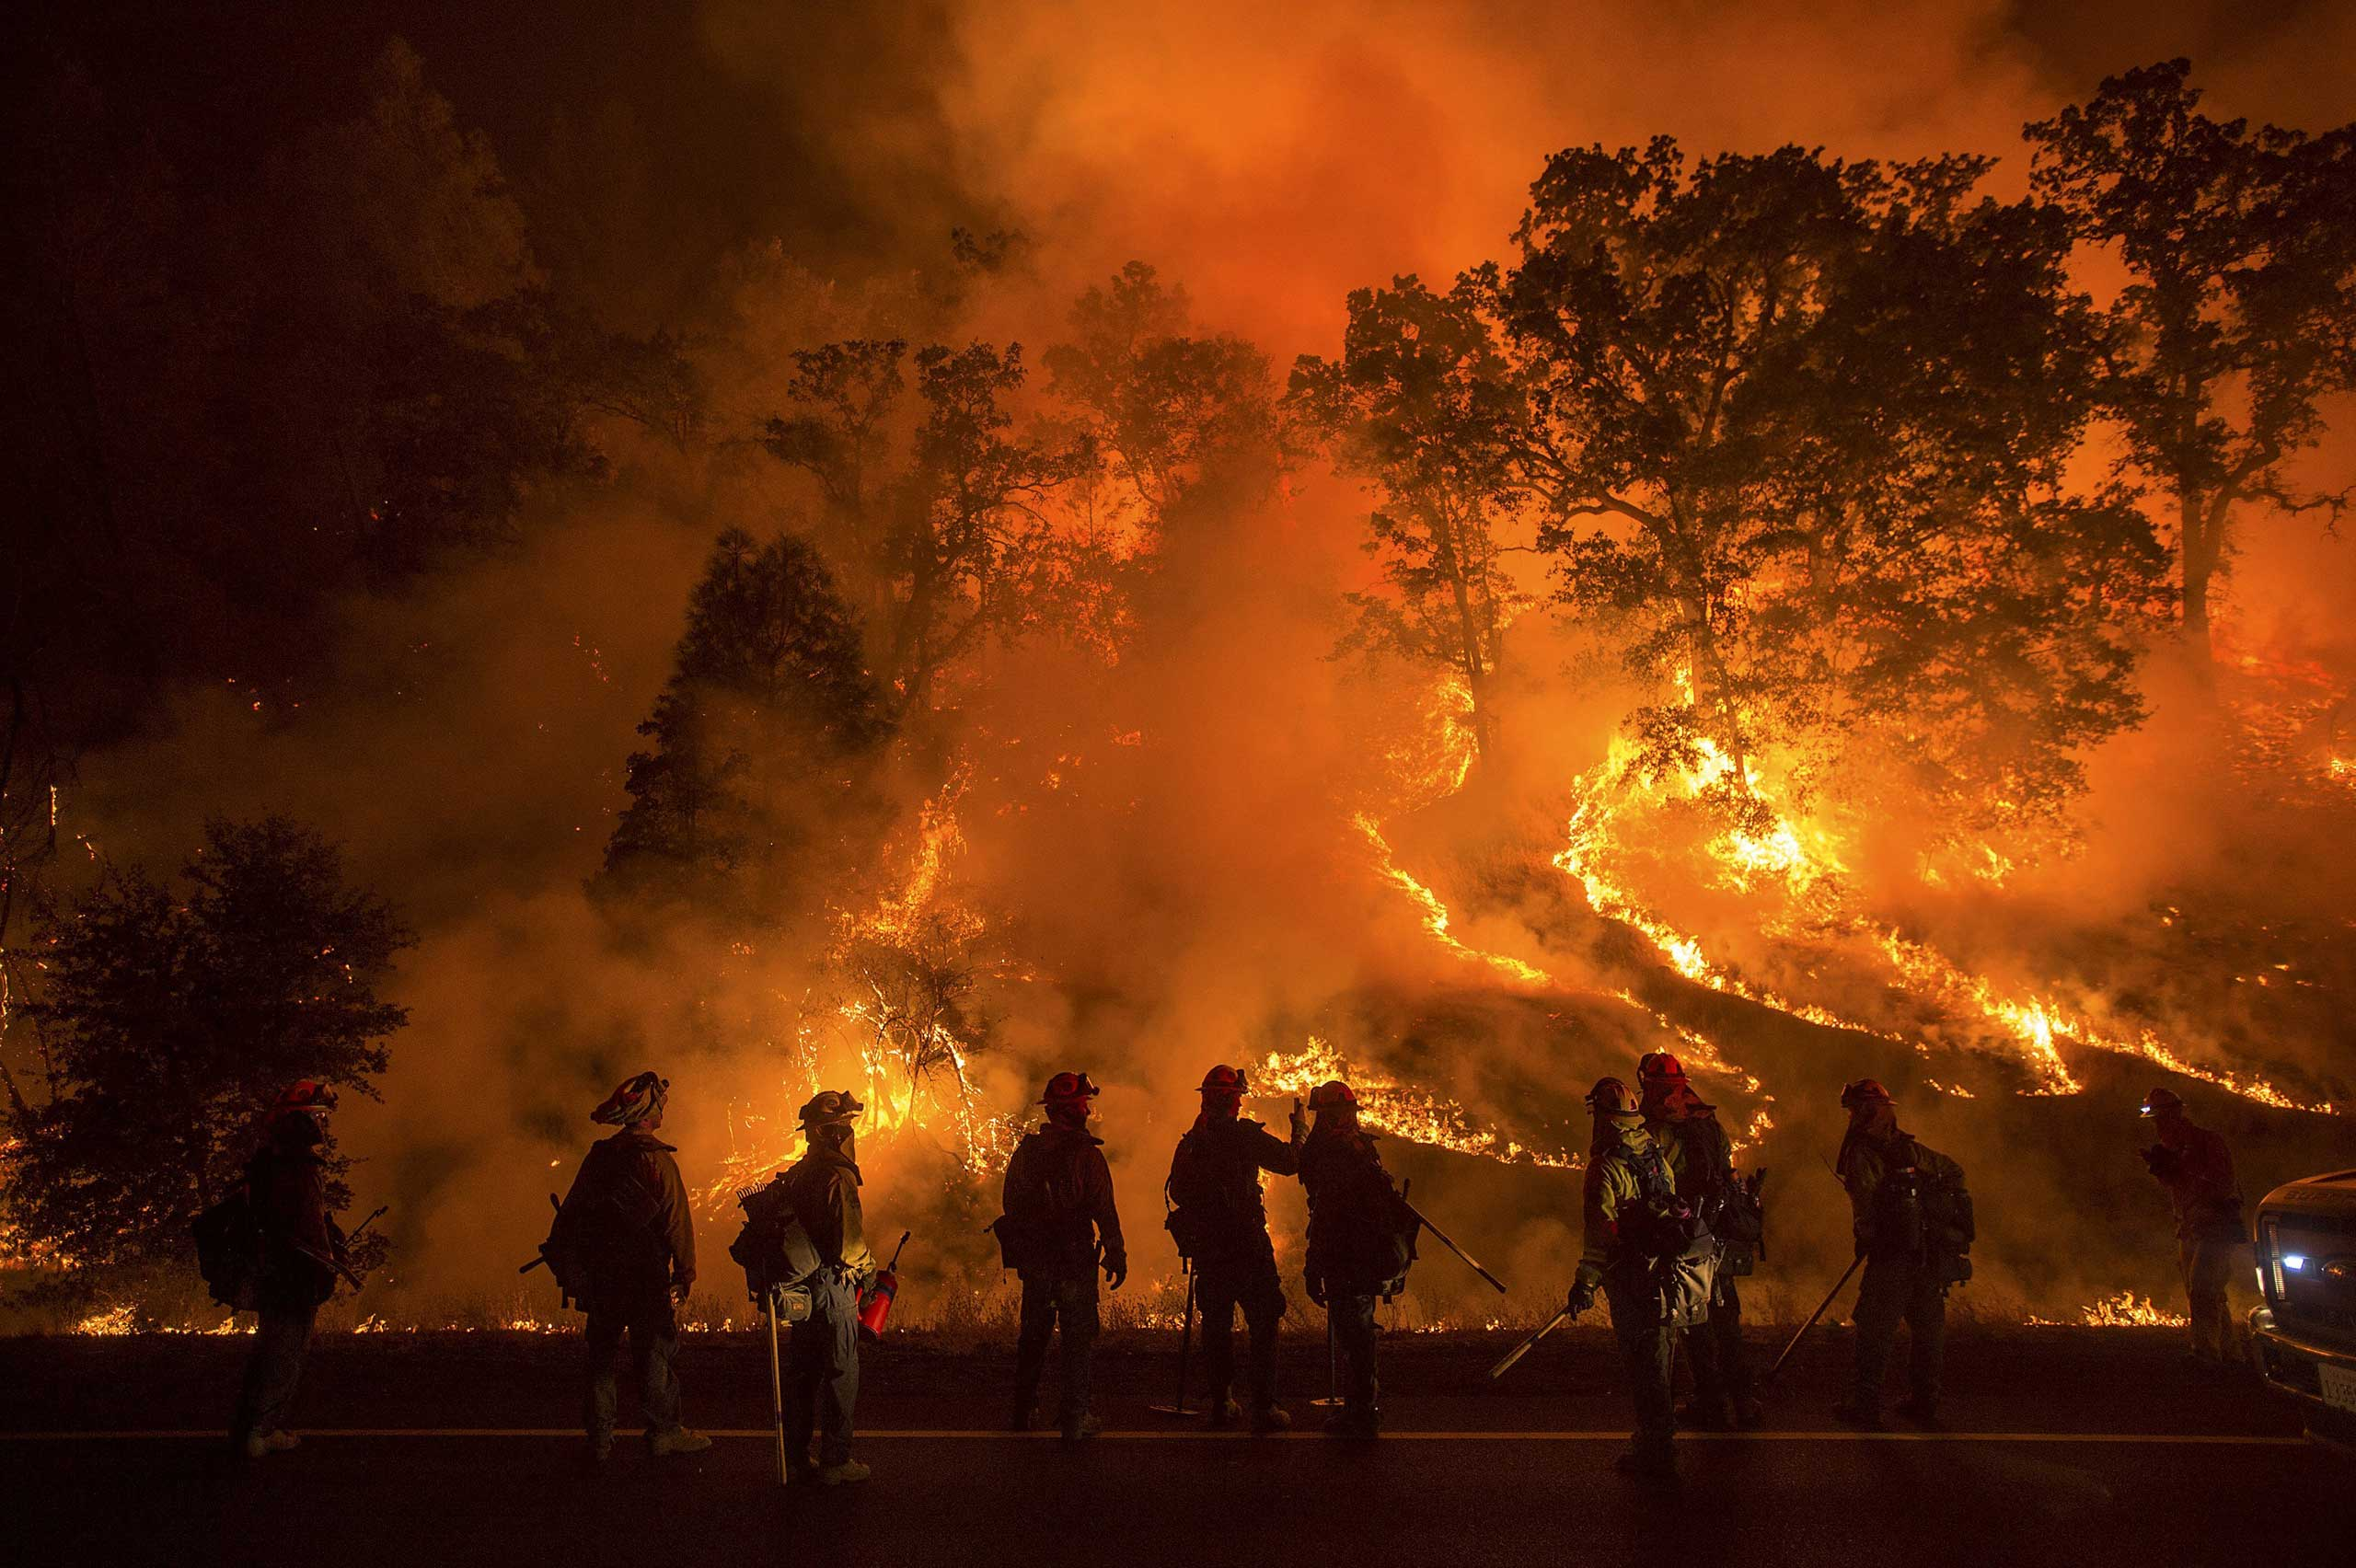 Flames from the Valley Fire cover a hillside along Highway 29 in Lower Lake, California September 13, 2015.